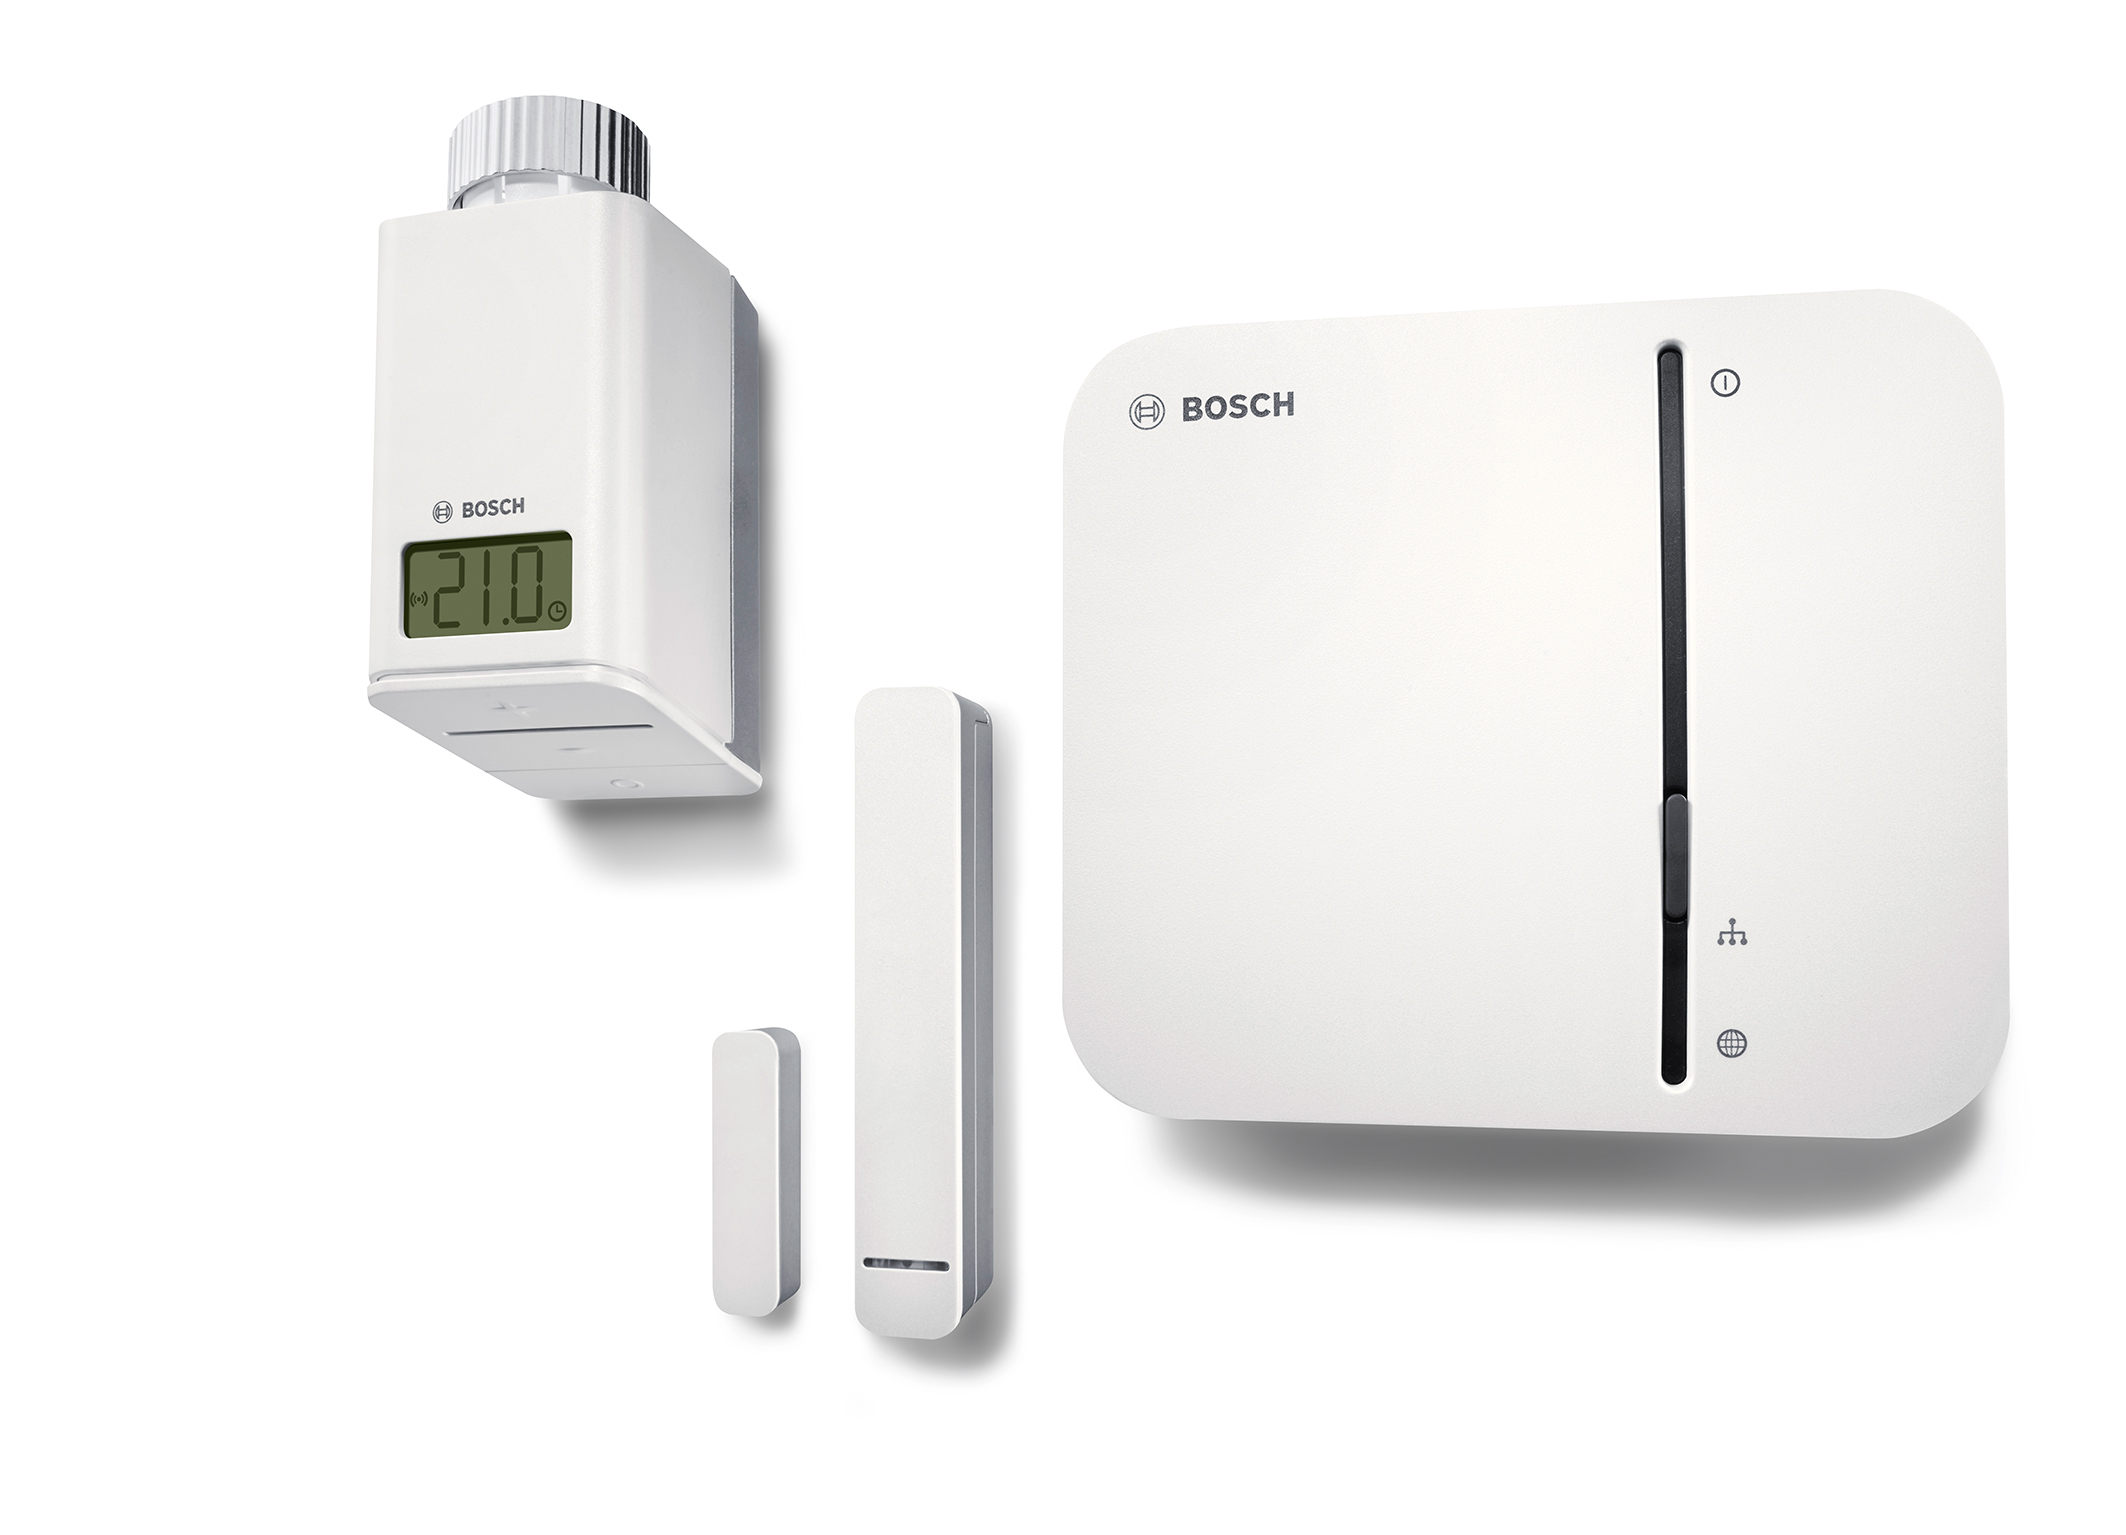 Bosch Smart-Home-Produkte <br>Smarter Thermostat, Tür-Fenster-Kontakt, Smart Home Controller